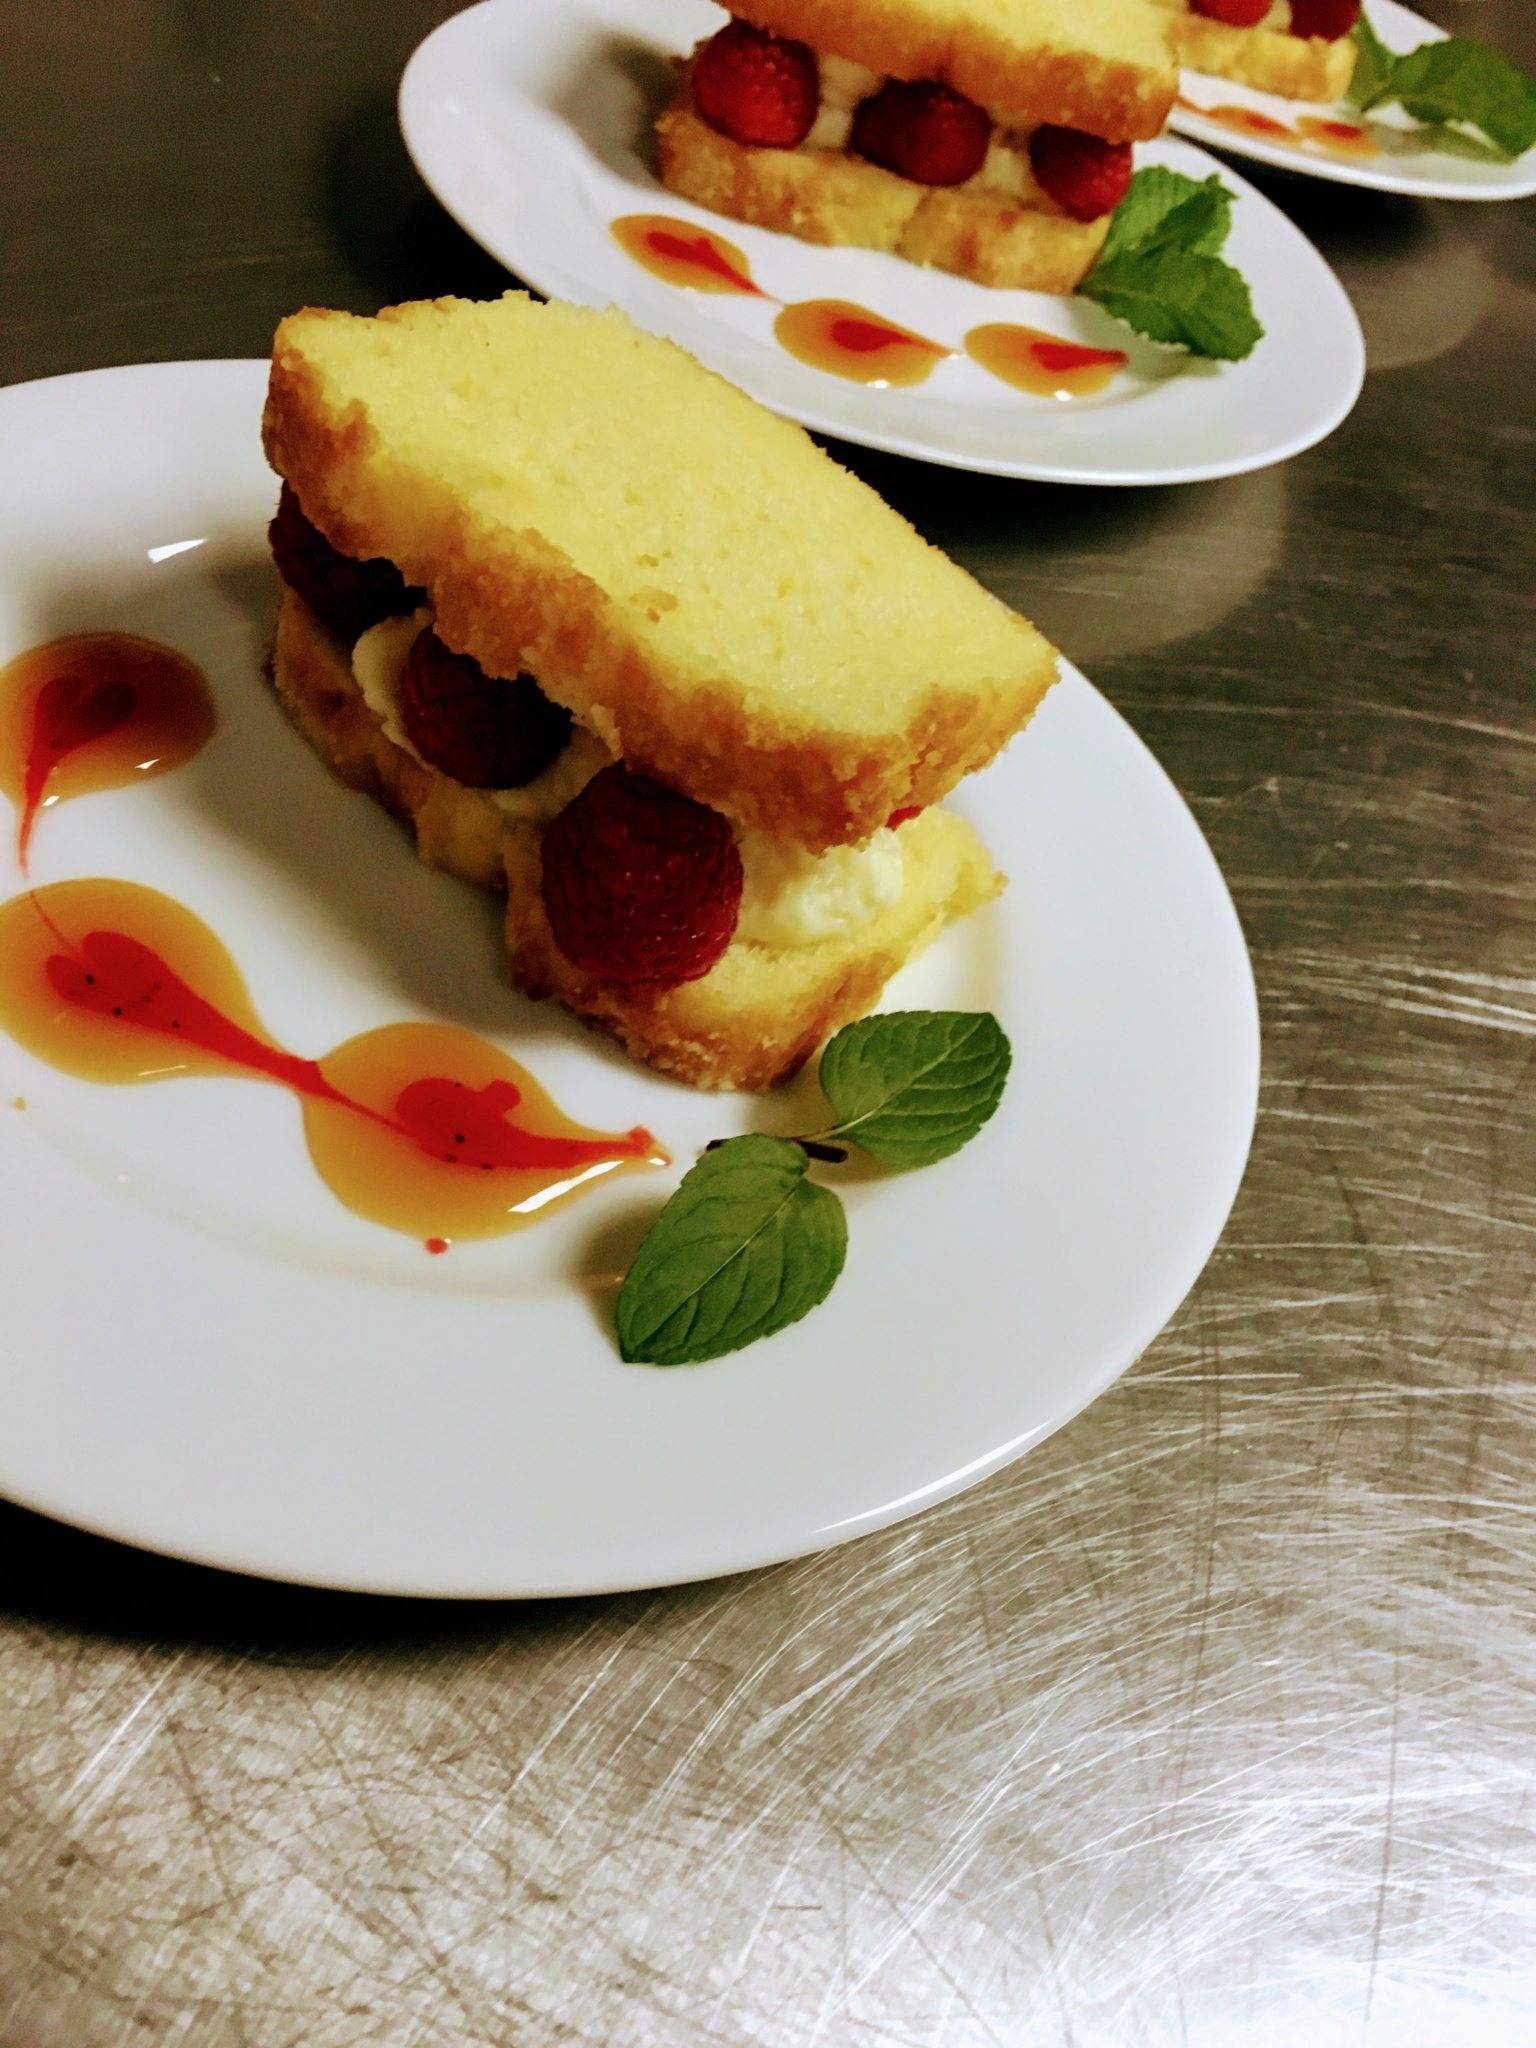 Two pieces of shortcake with berries and cream between them